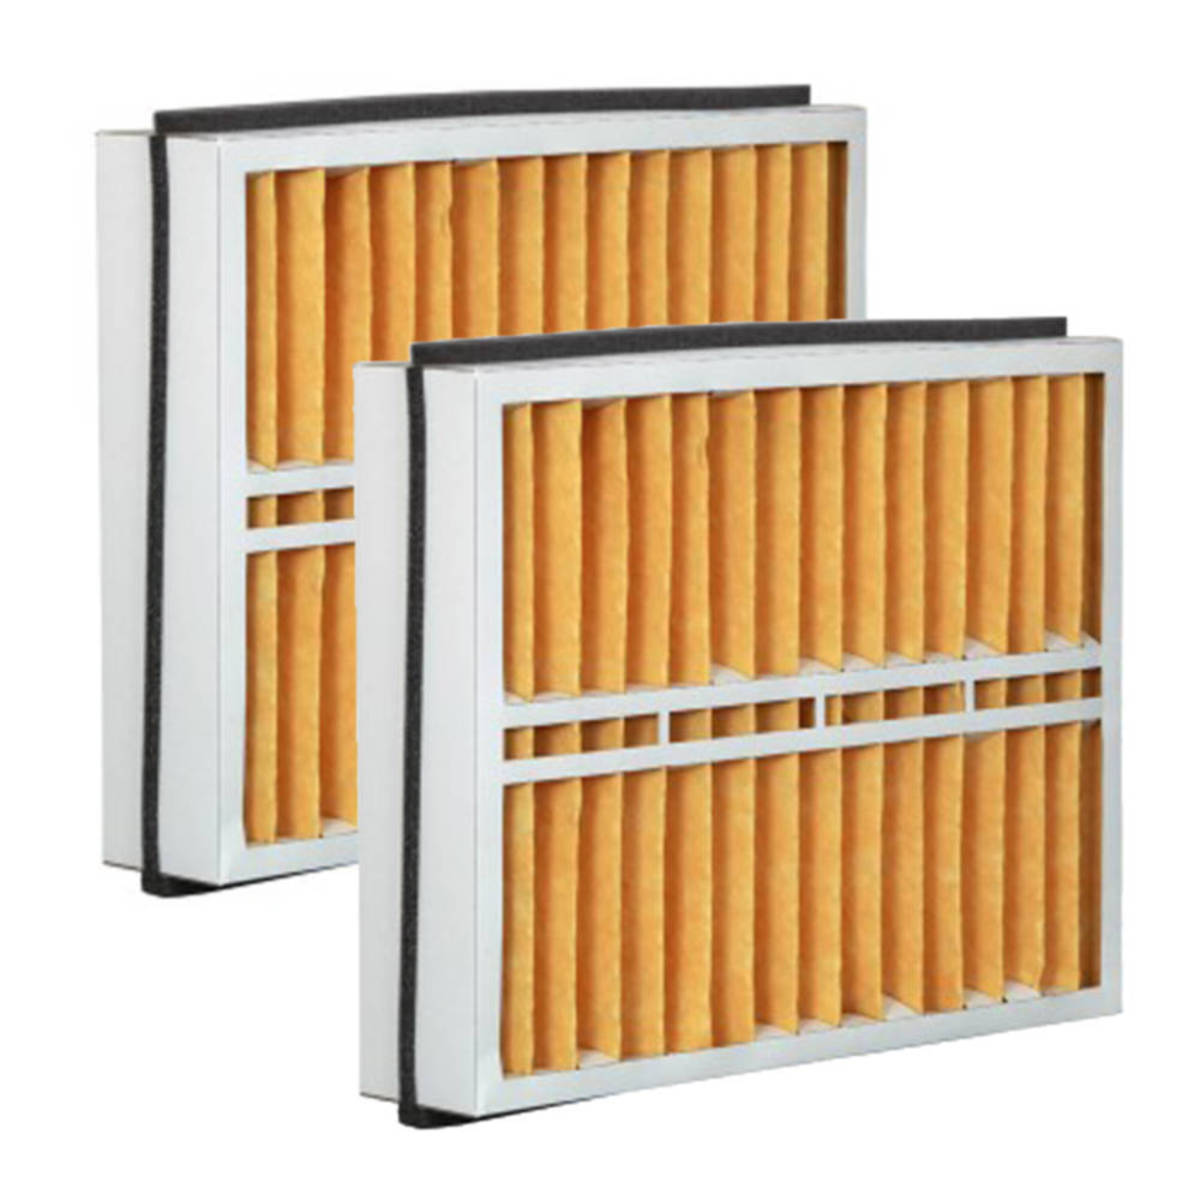 Tier1 Replacement for Trane 21x26x5 Merv 11 AC Furnace Air Filter 2 Pack